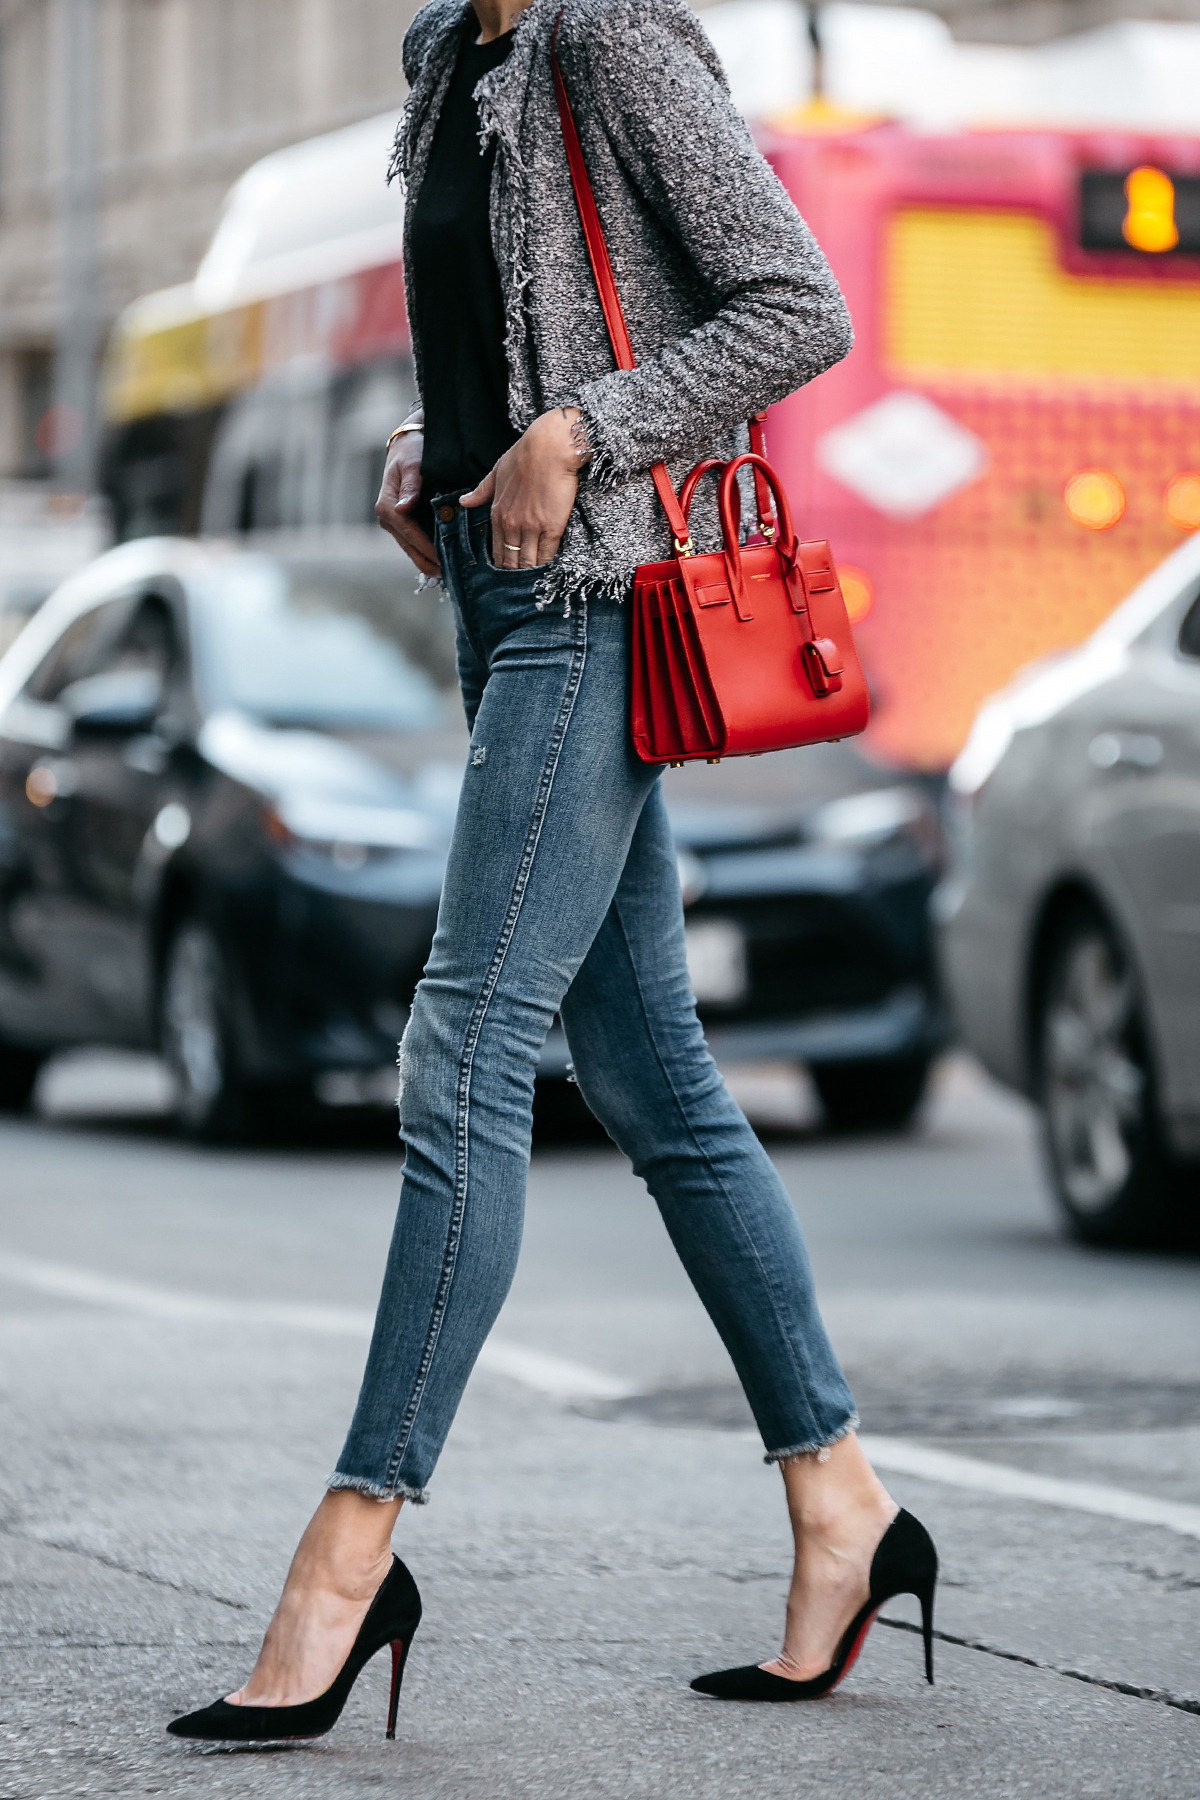 Woman Wearing IRO Shavanix Grey Tweed Jacket Black Top Denim Ripped Skinny Jeans Christian Louboutin Black Pumps Saint Laurent Sac De Jour Red Handbag Fashion Jackson Dallas Blogger Fashion Blogger Street Style